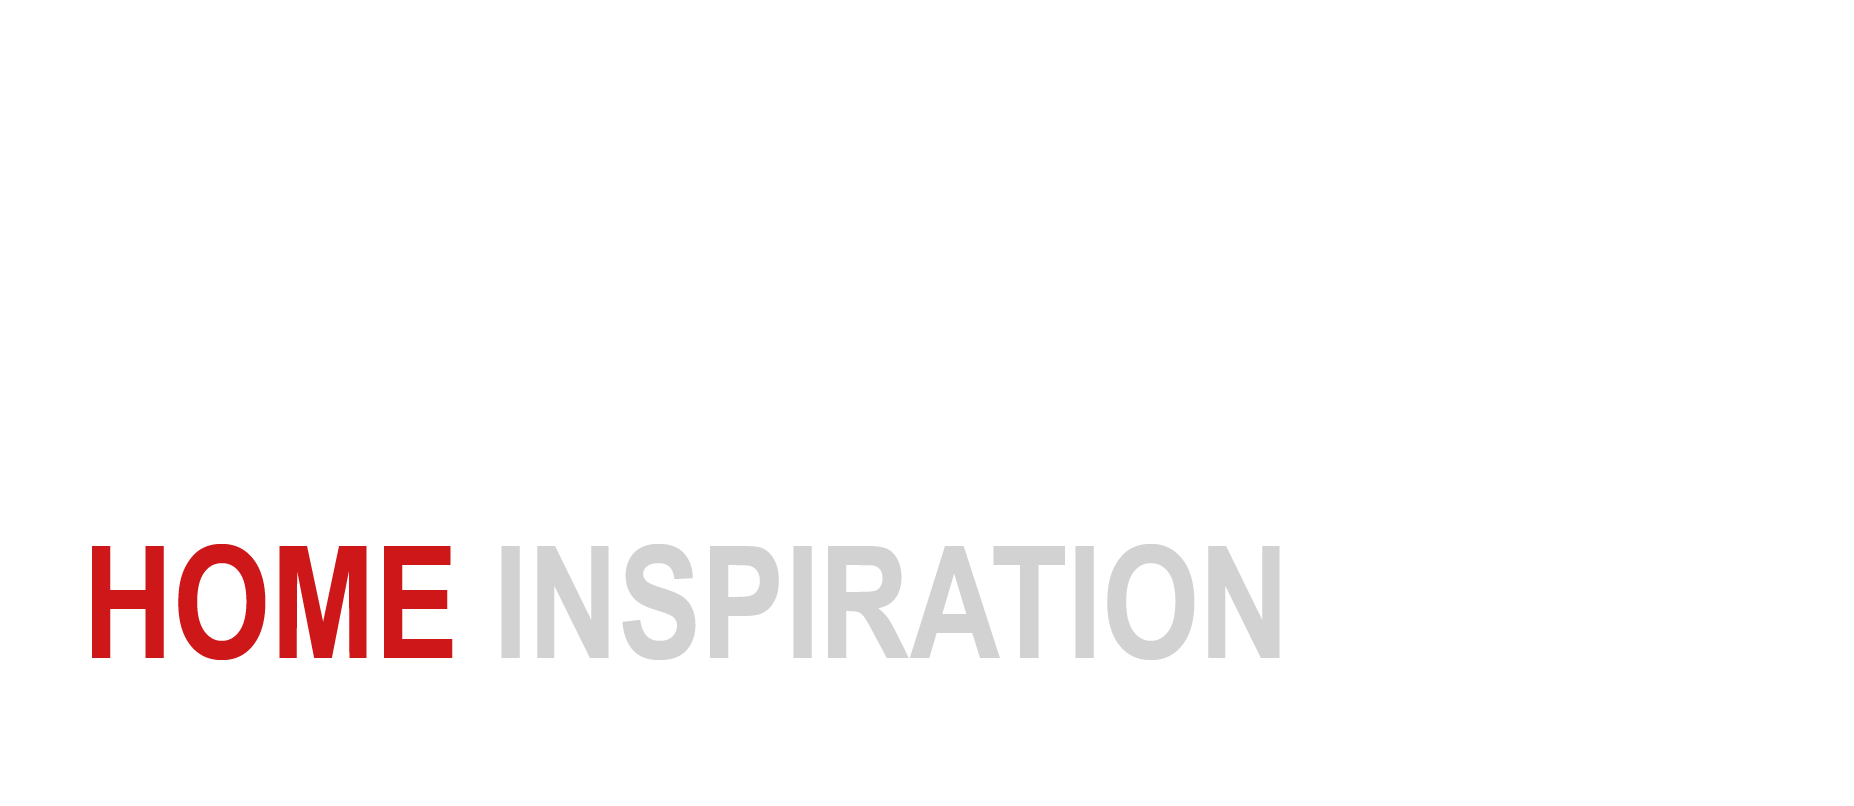 Home Inspiration Group